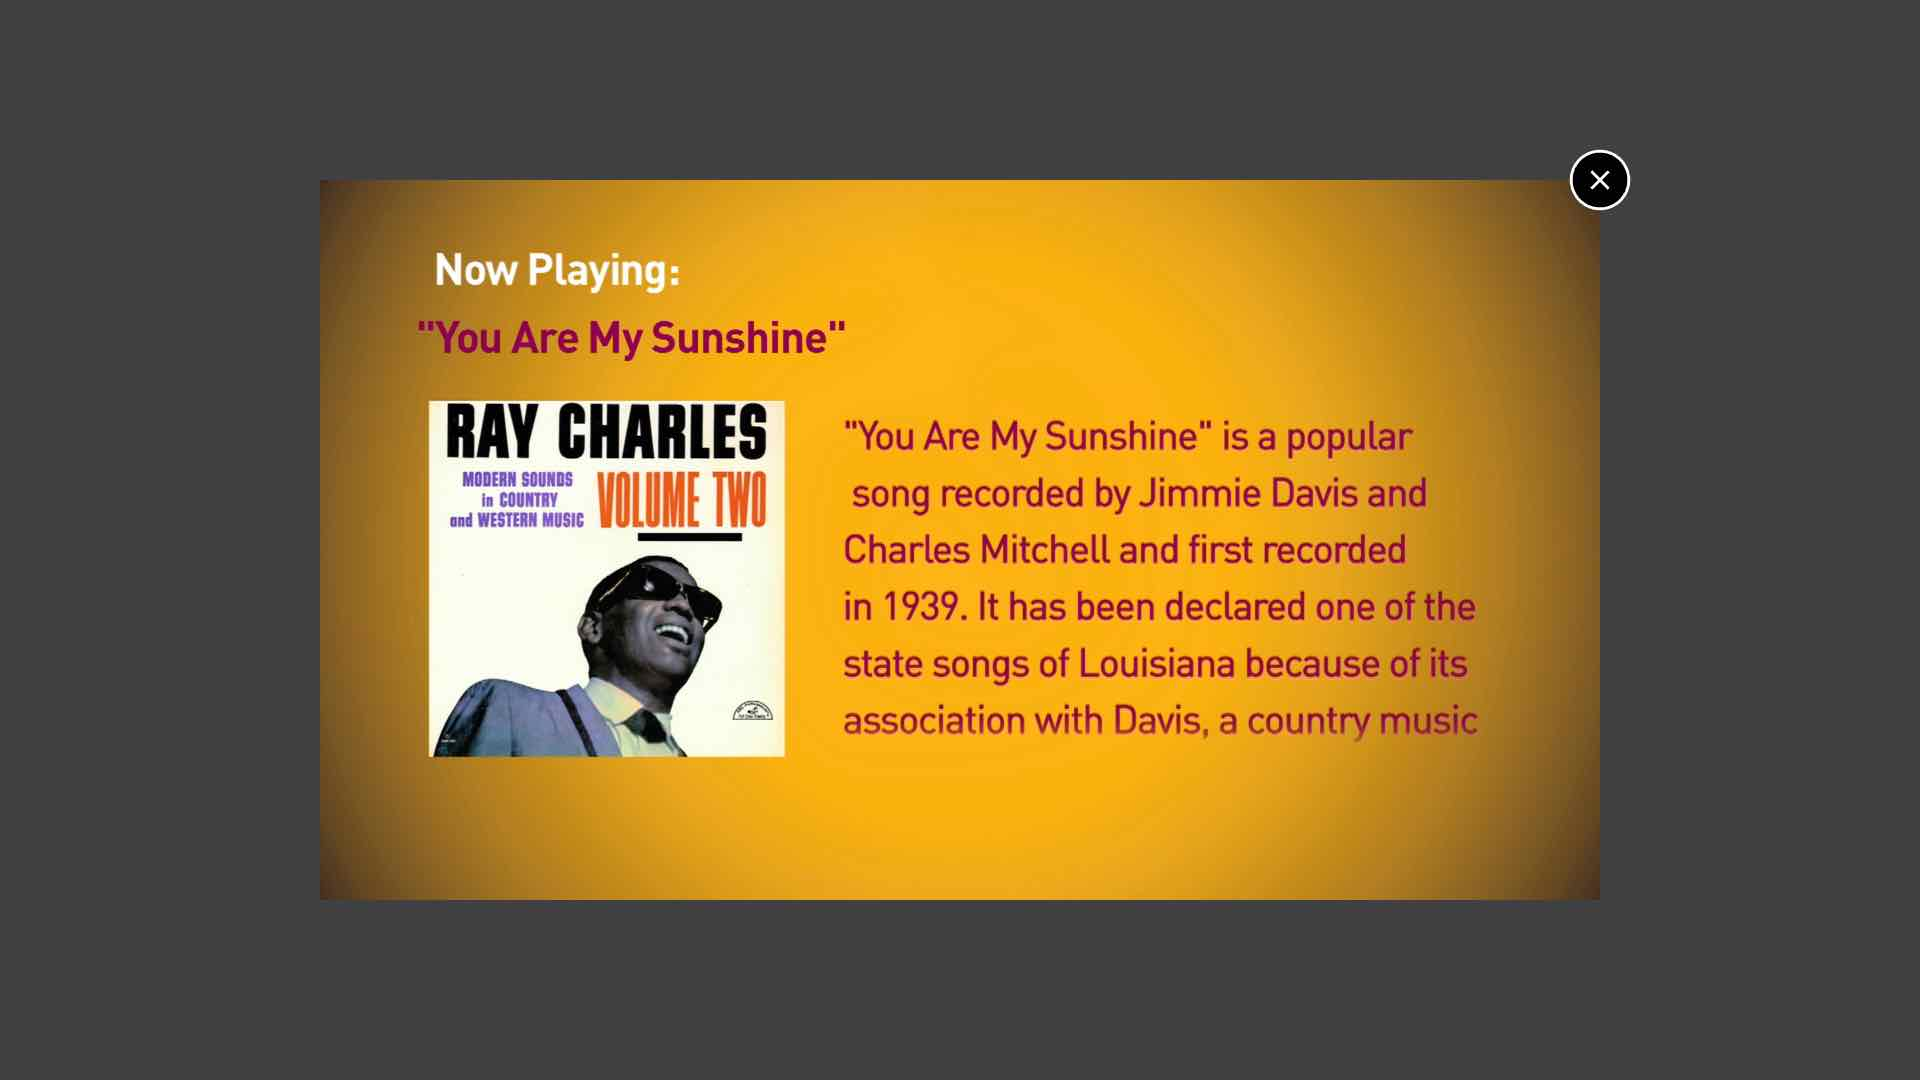 Ray Charles timeline - video overlay